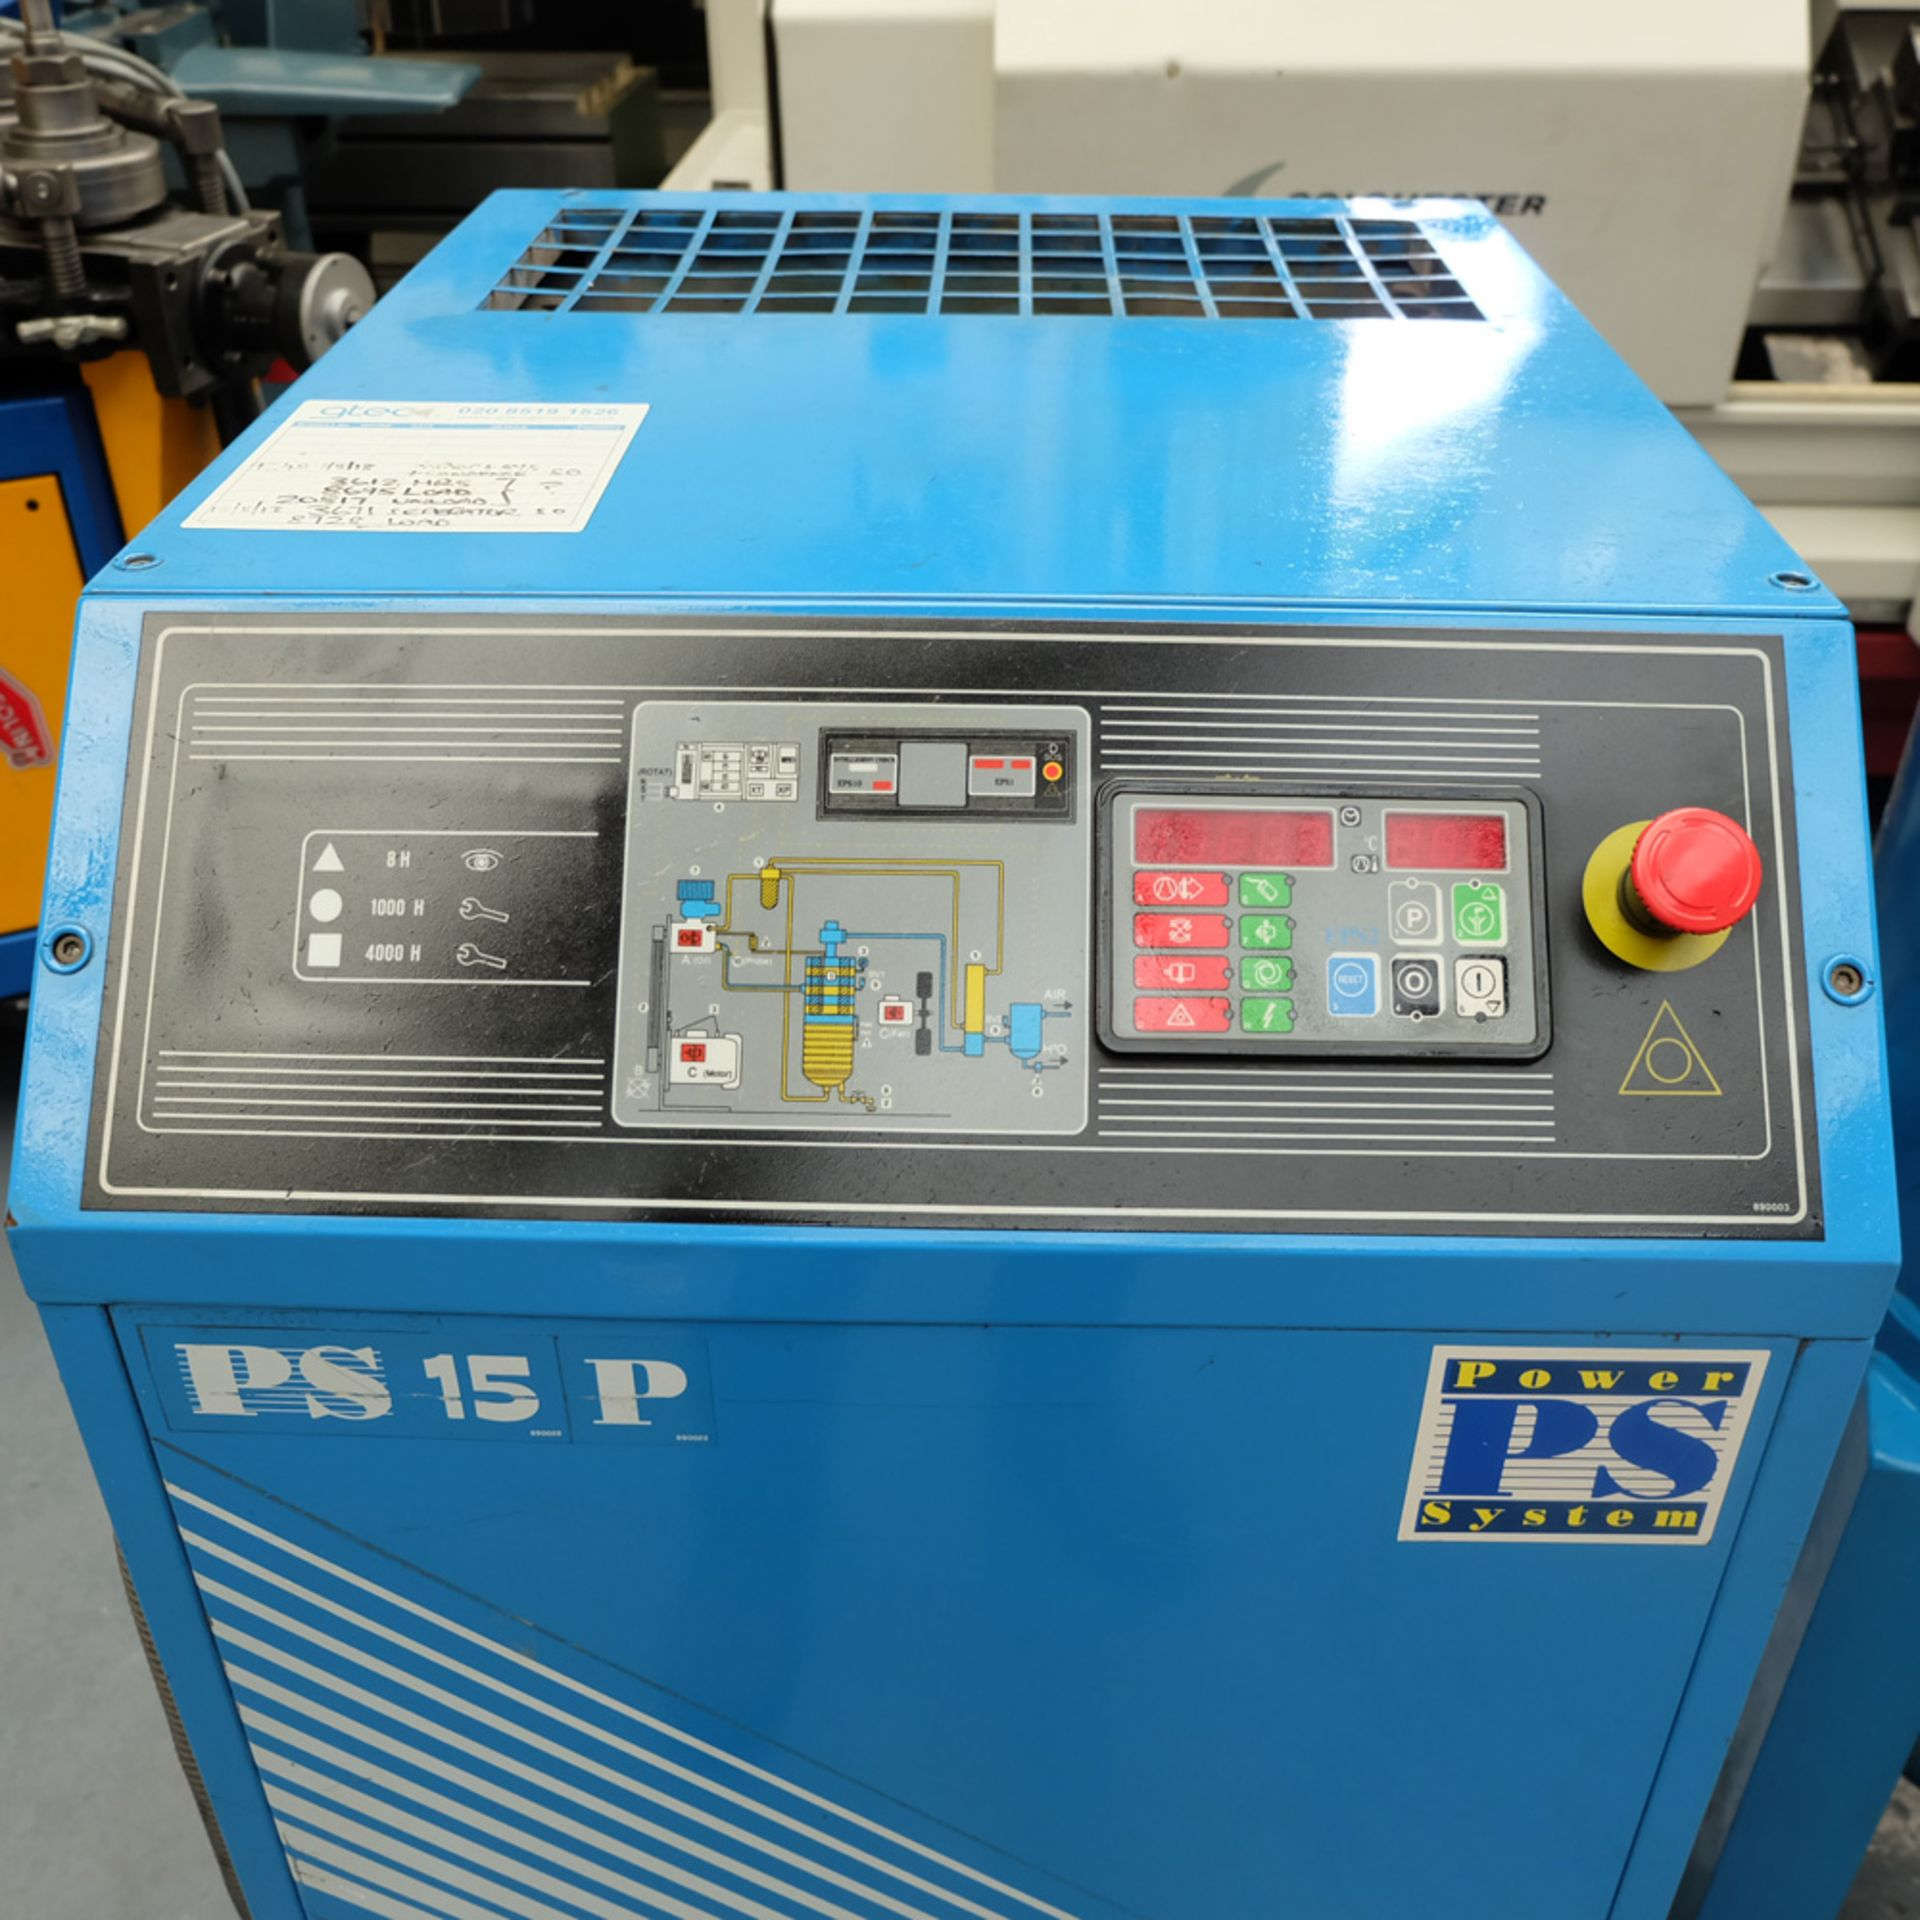 Power Systems Model PS 15-8P Rotary Screw Compressor with 500ltr Tank. - Image 4 of 8